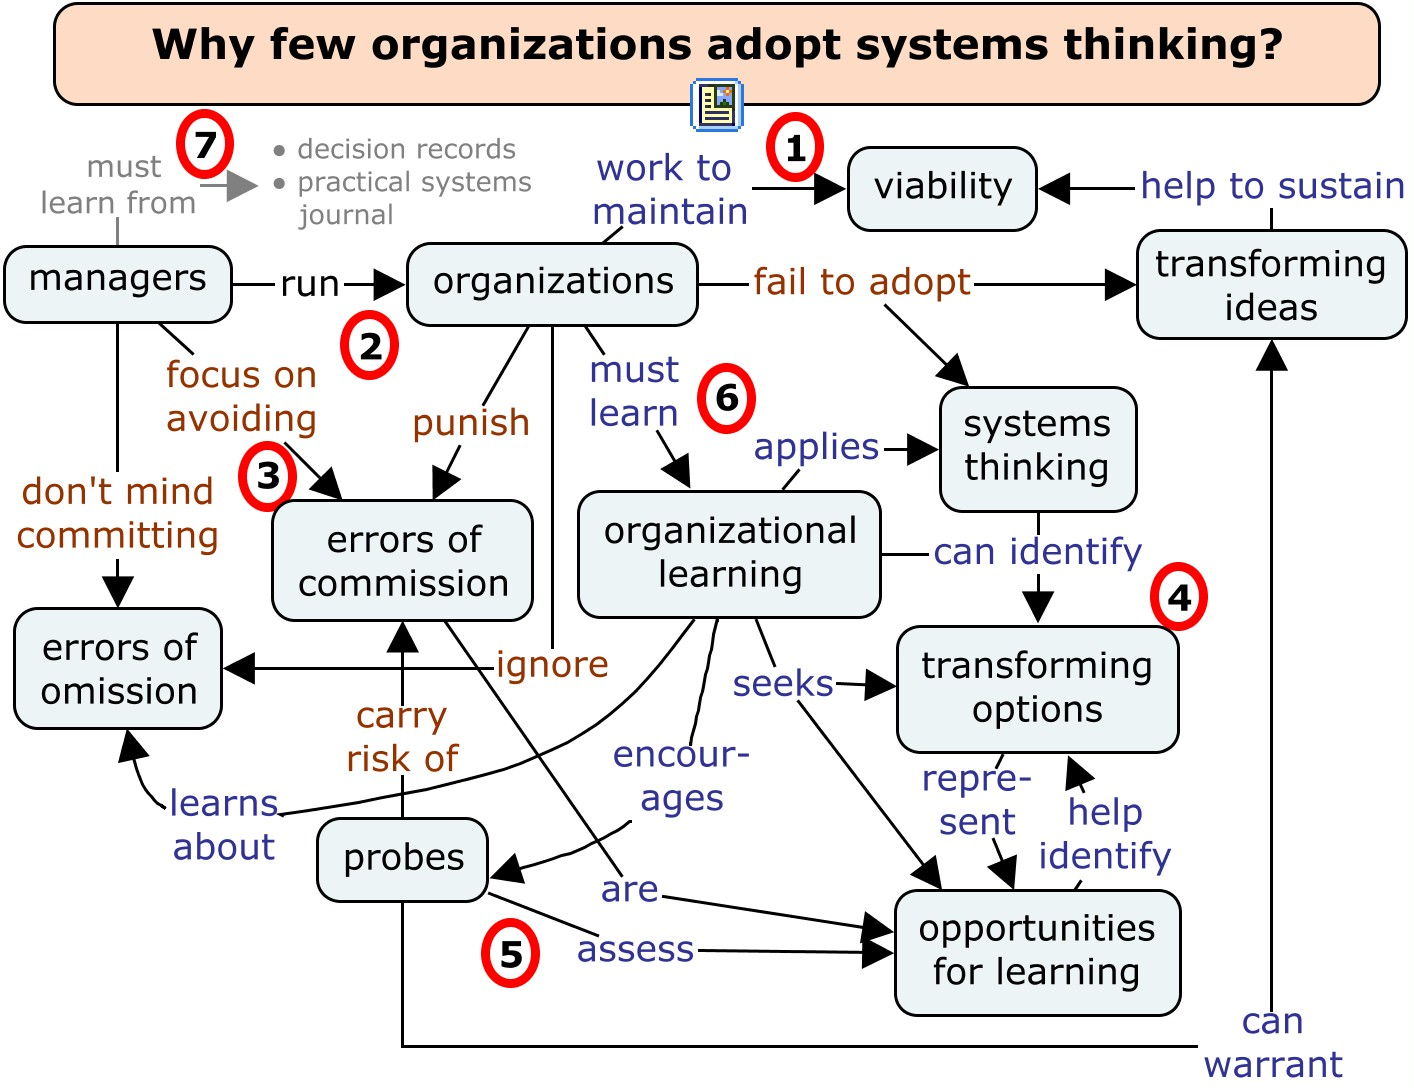 Summarizing 'Why few organizations adopt systems thinking'